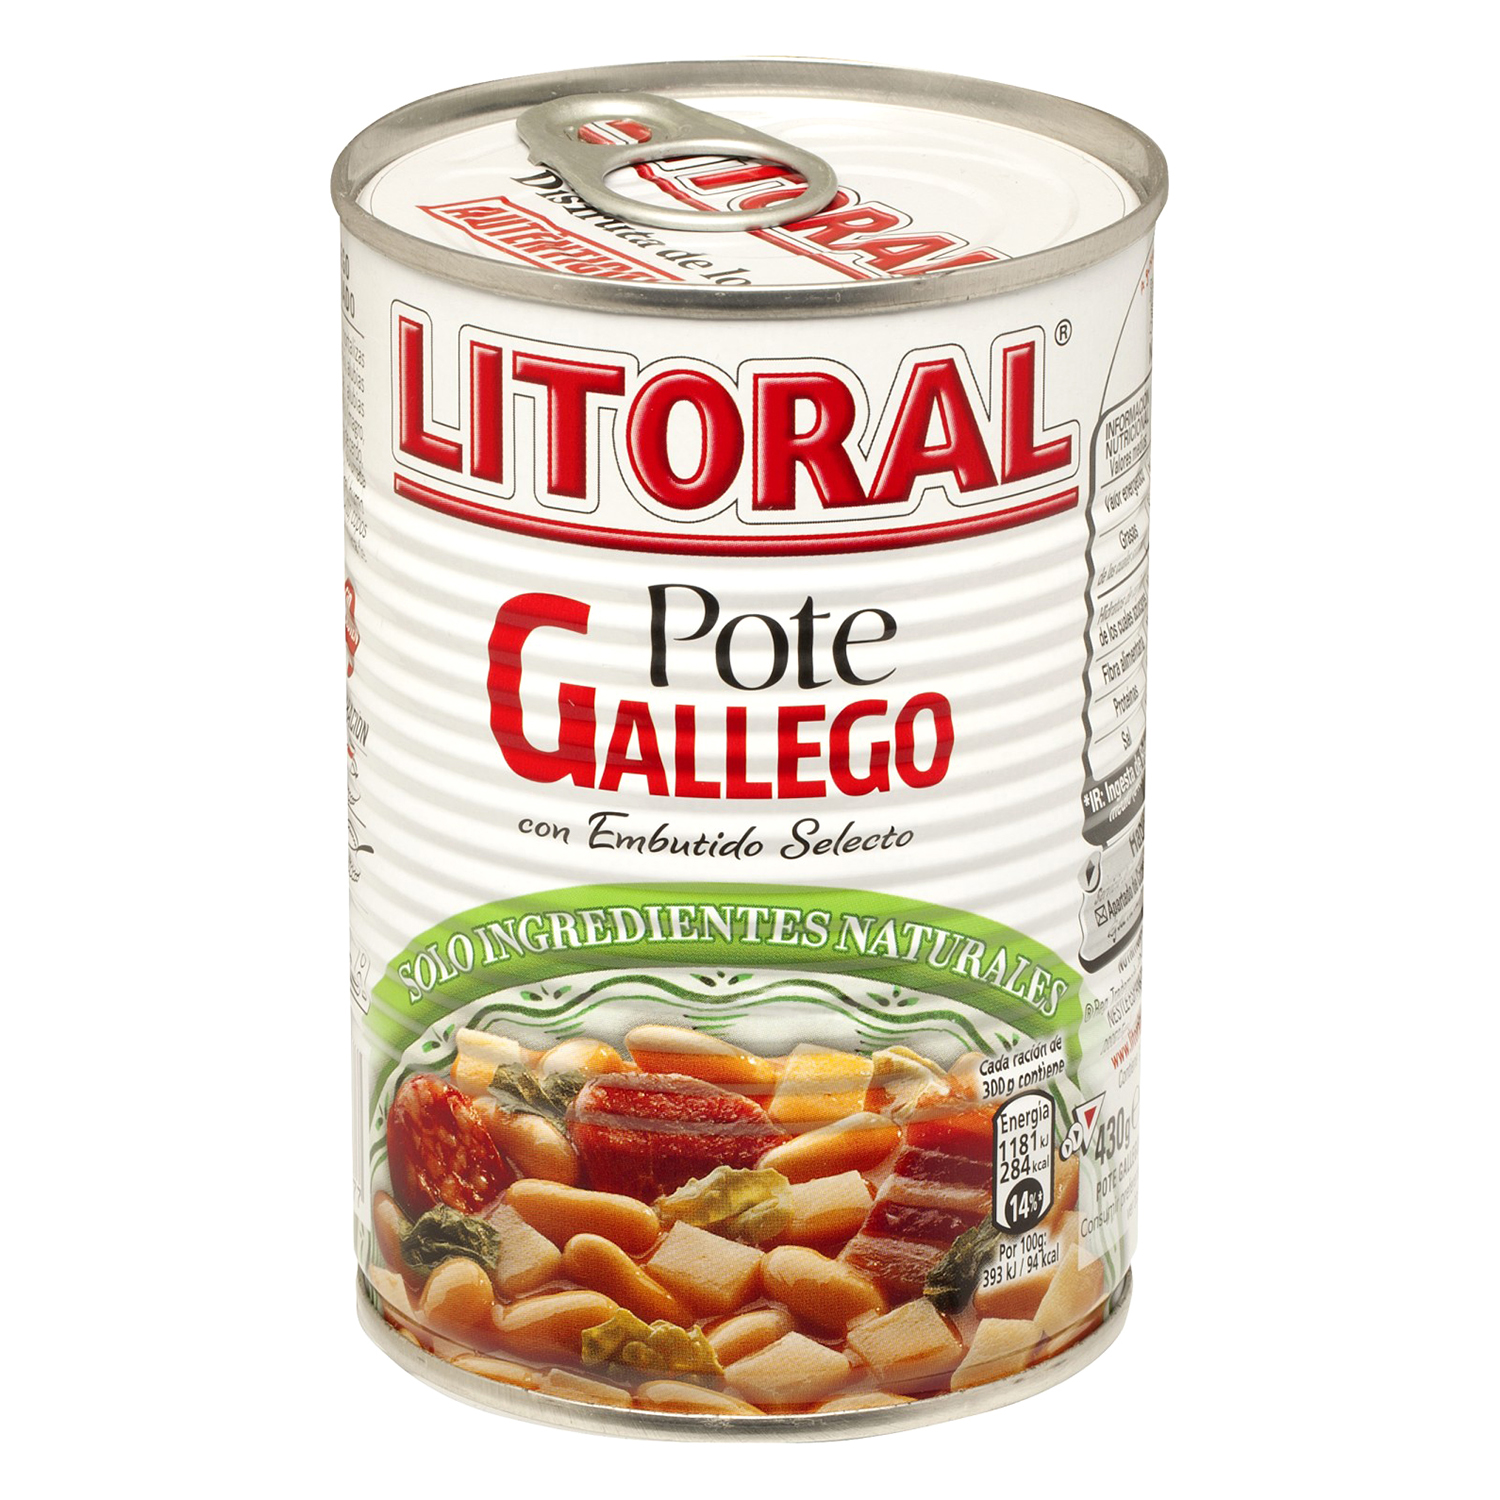 Pote Gallego